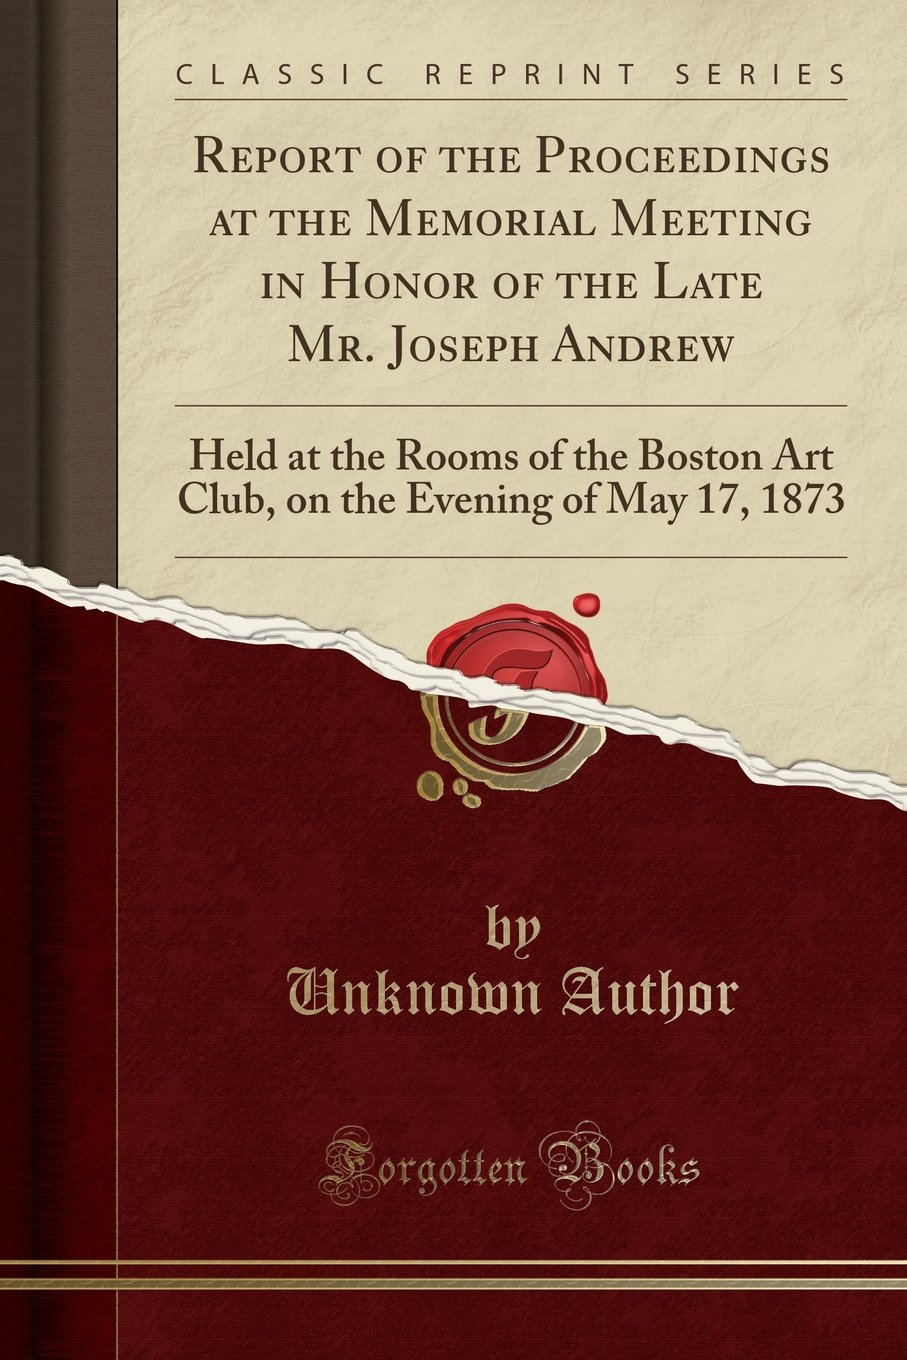 Download Report of the Proceedings at the Memorial Meeting in Honor of the Late Mr. Joseph Andrew: Held at the Rooms of the Boston Art Club, on the Evening of May 17, 1873 (Classic Reprint) PDF